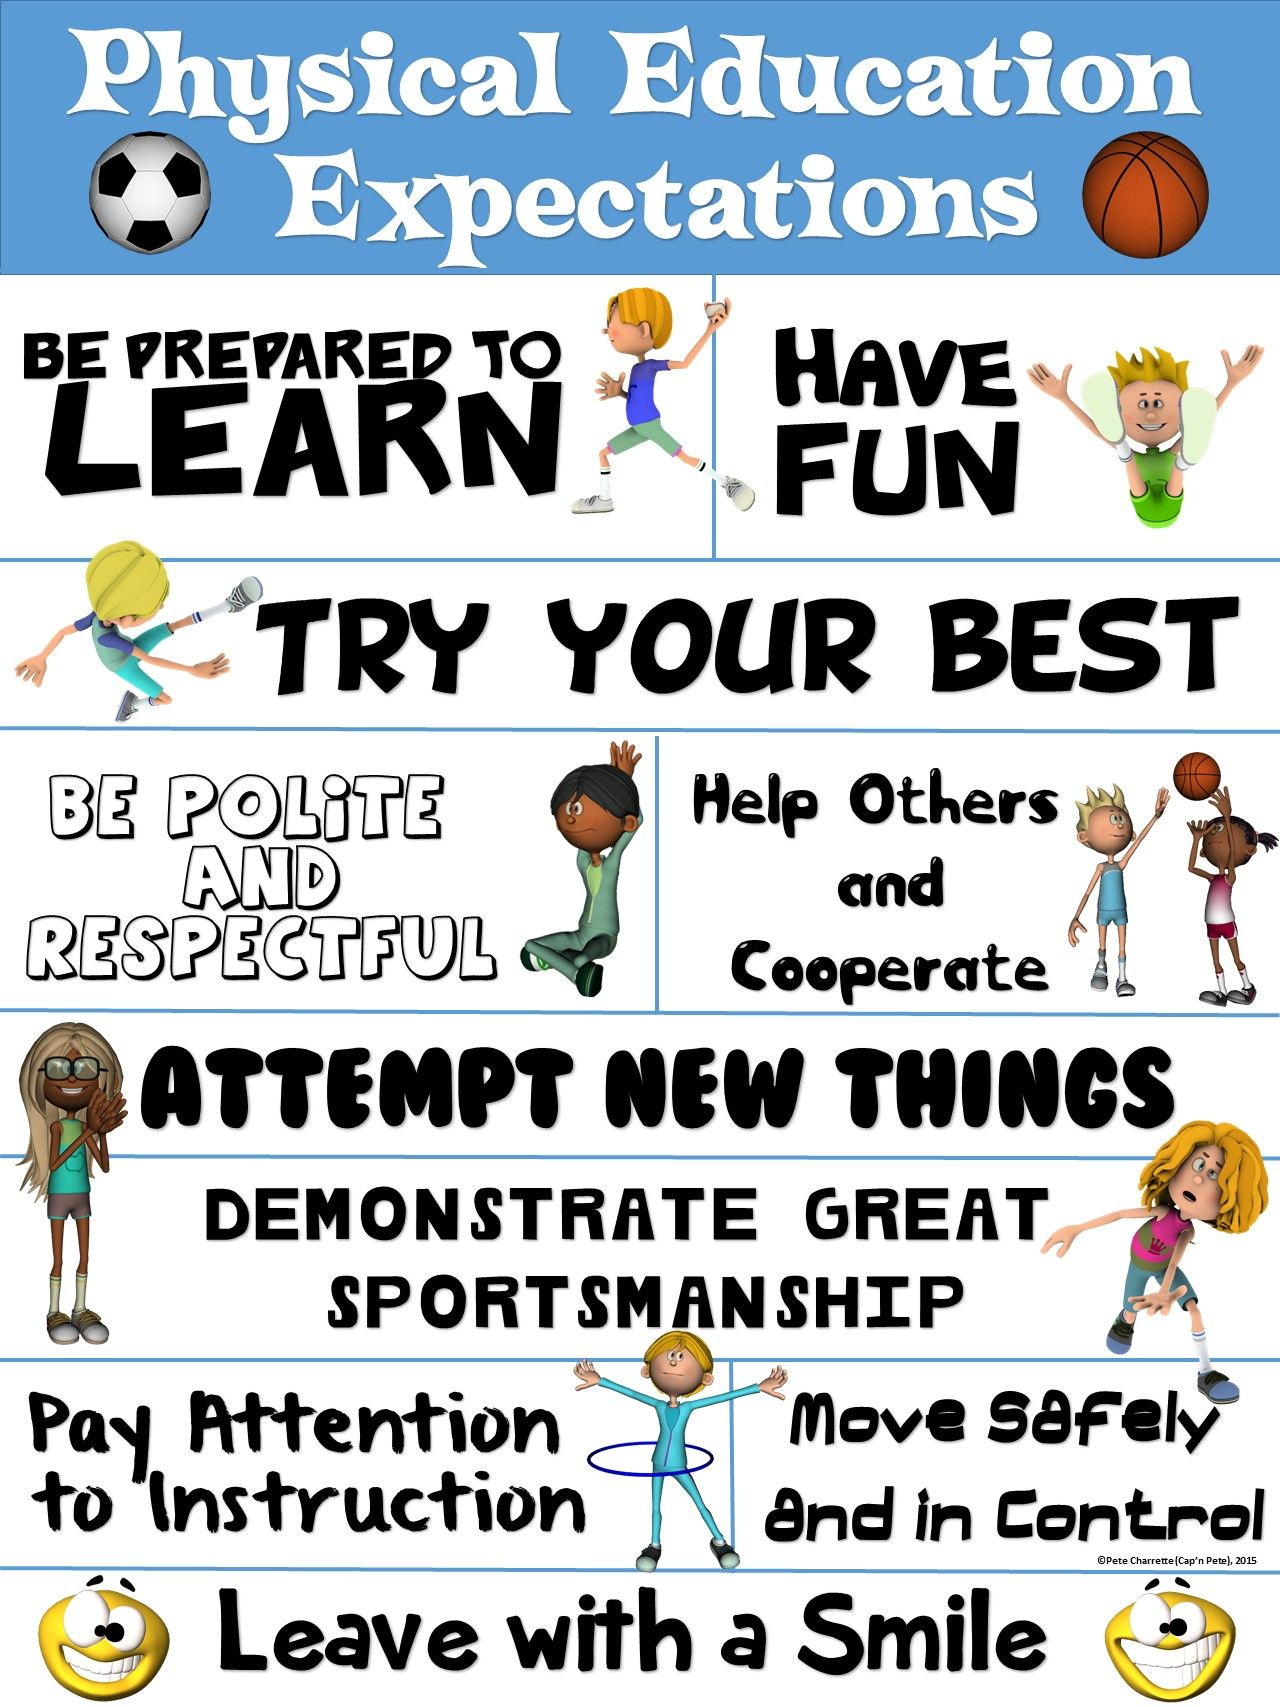 Pe Poster Physical Education Expectations